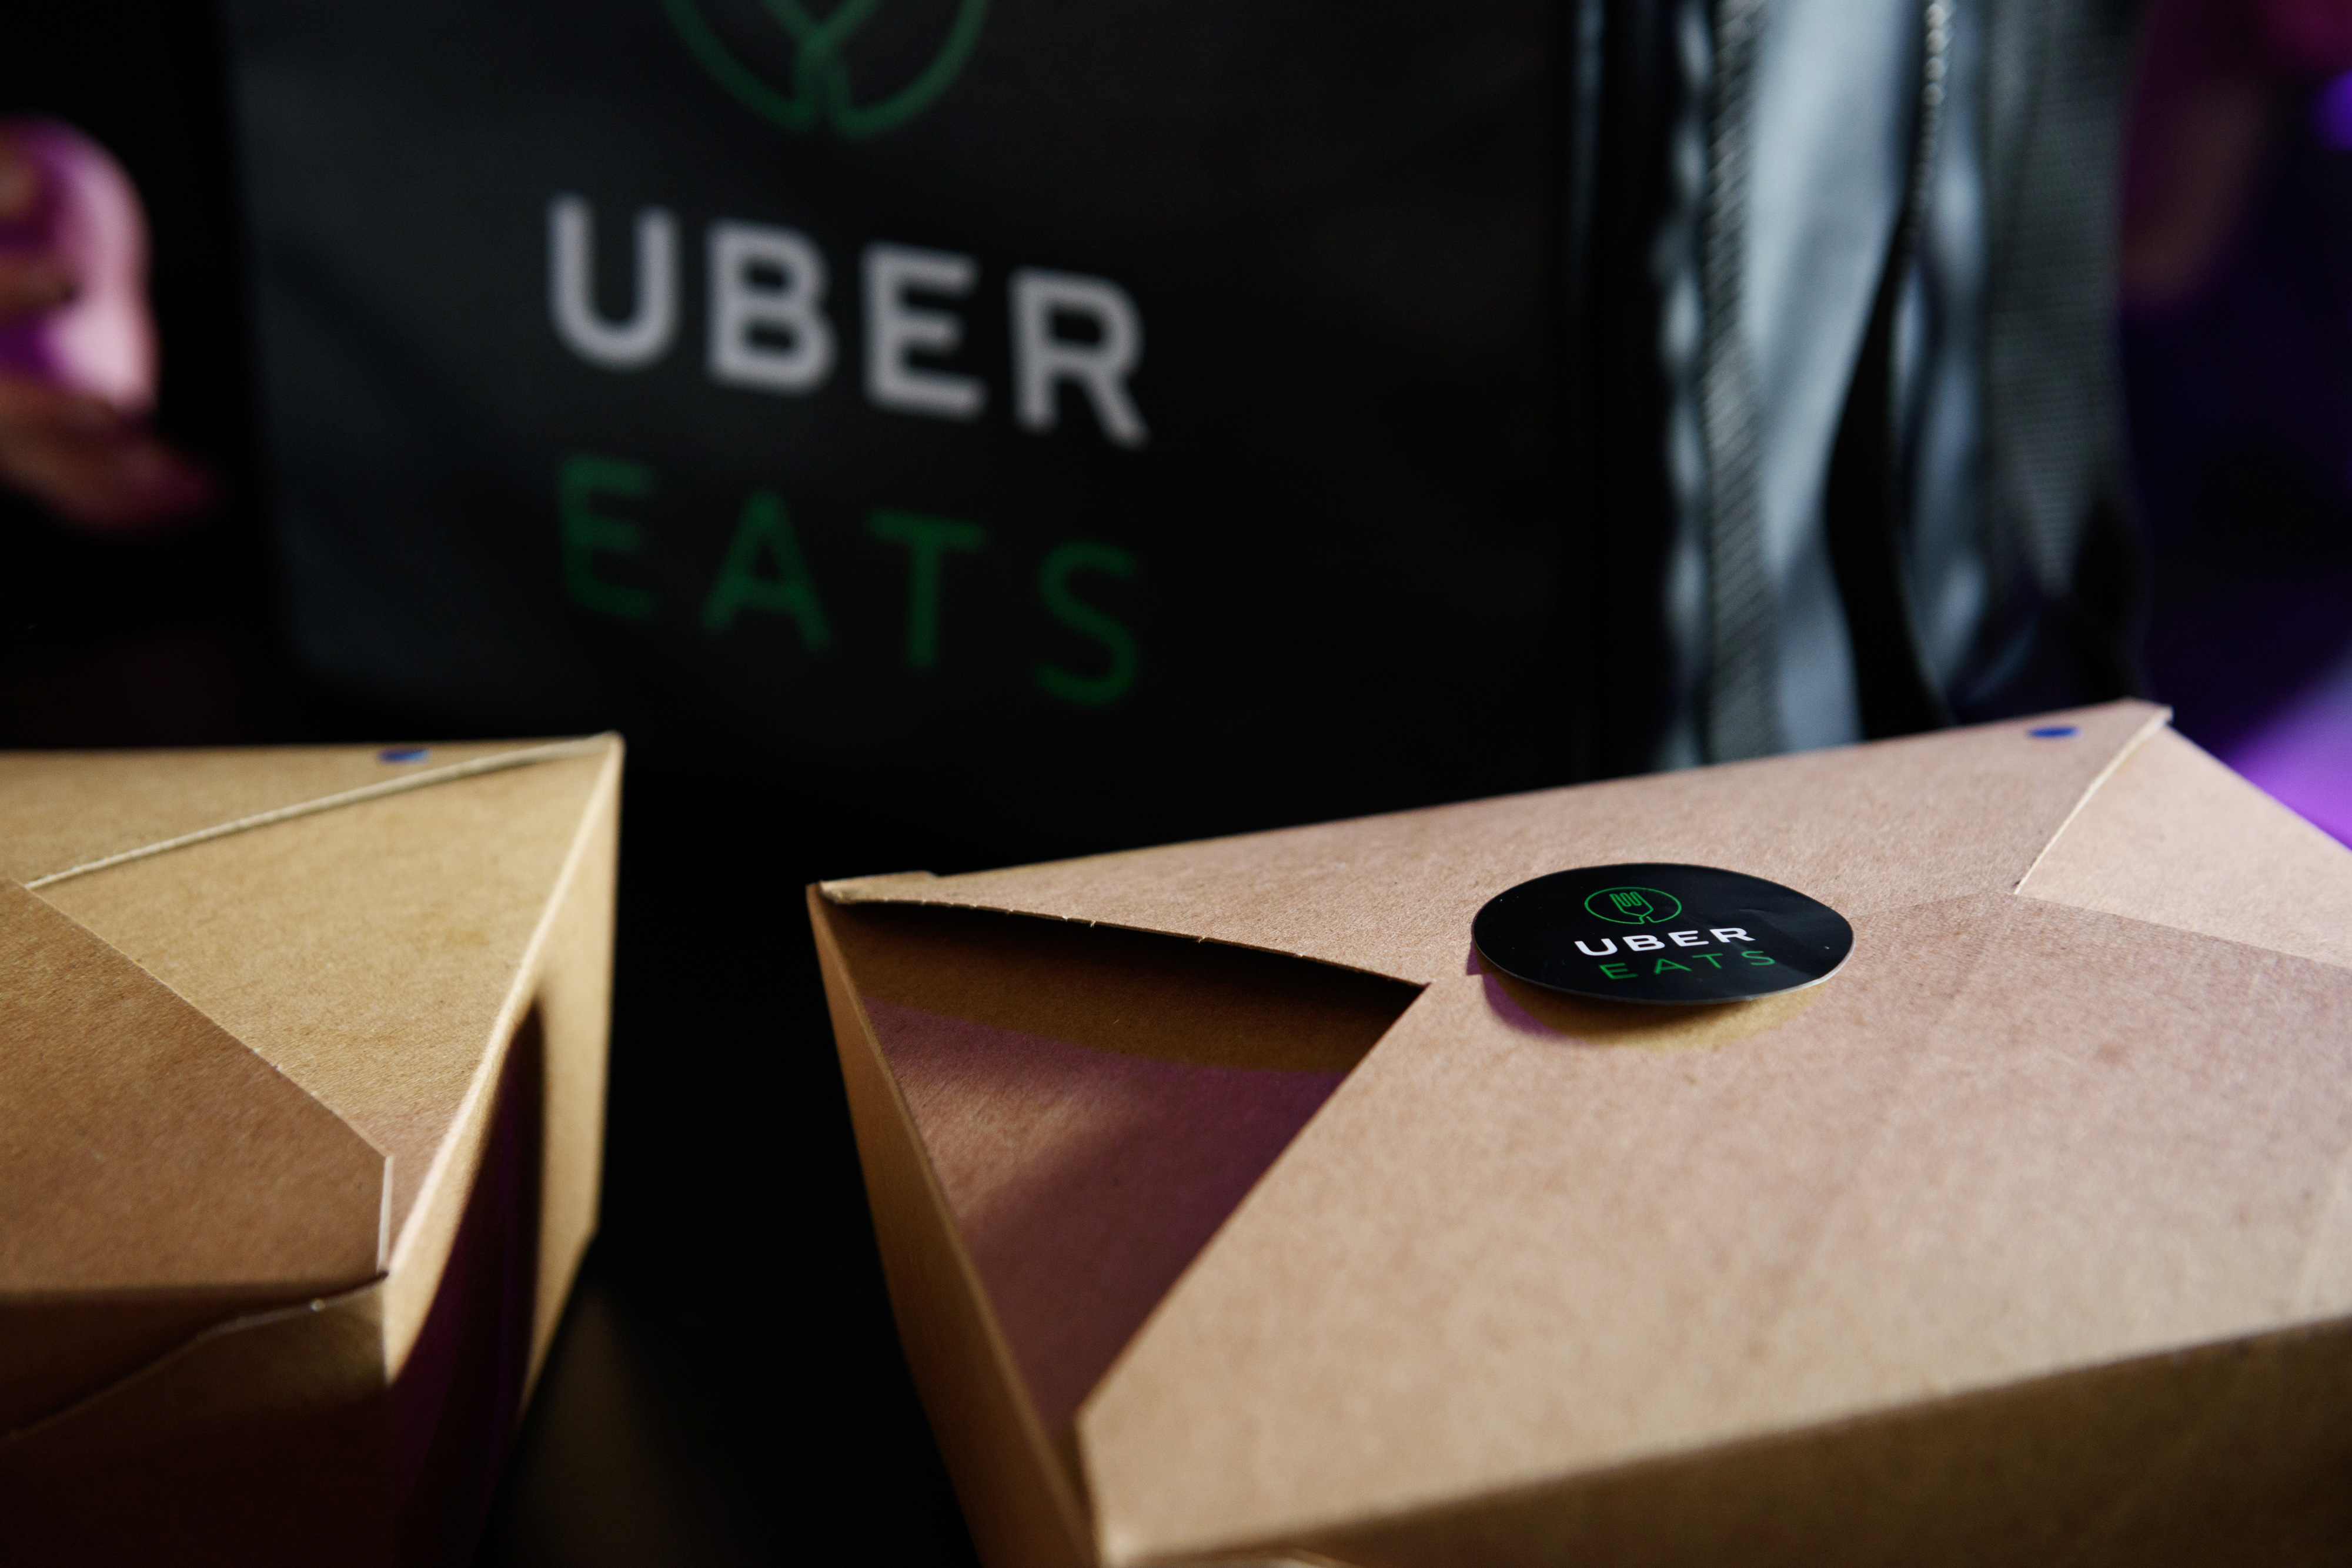 UberEats Japan Launch News Conference